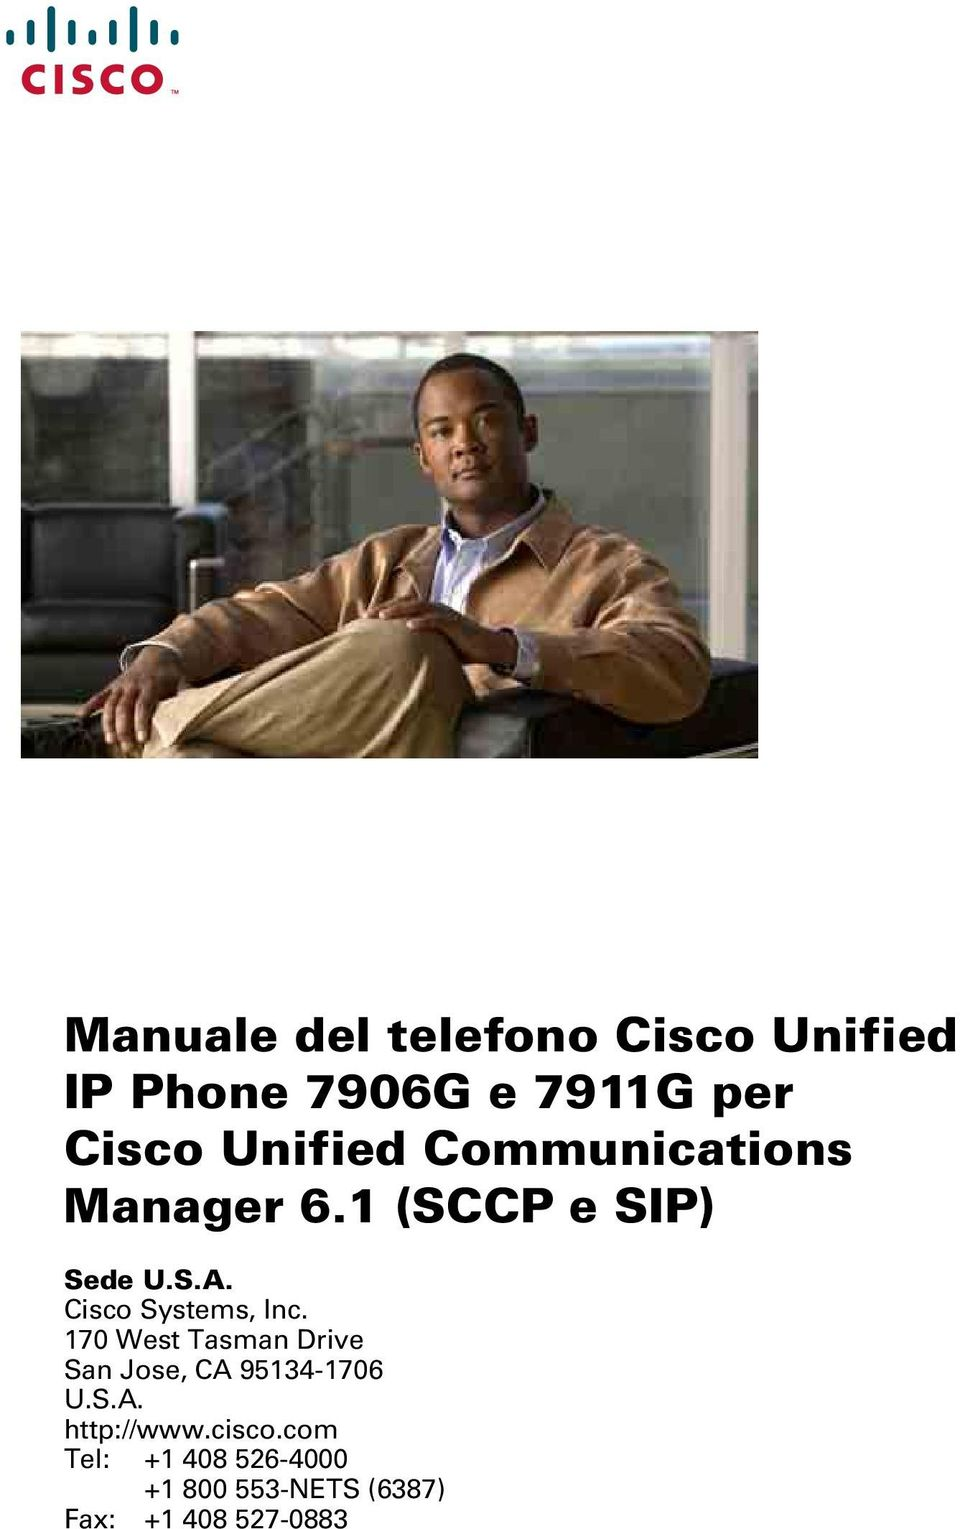 Cisco Systems, Inc. 170 West Tasman Drive San Jose, CA 95134-1706 U.S.A. http://www.